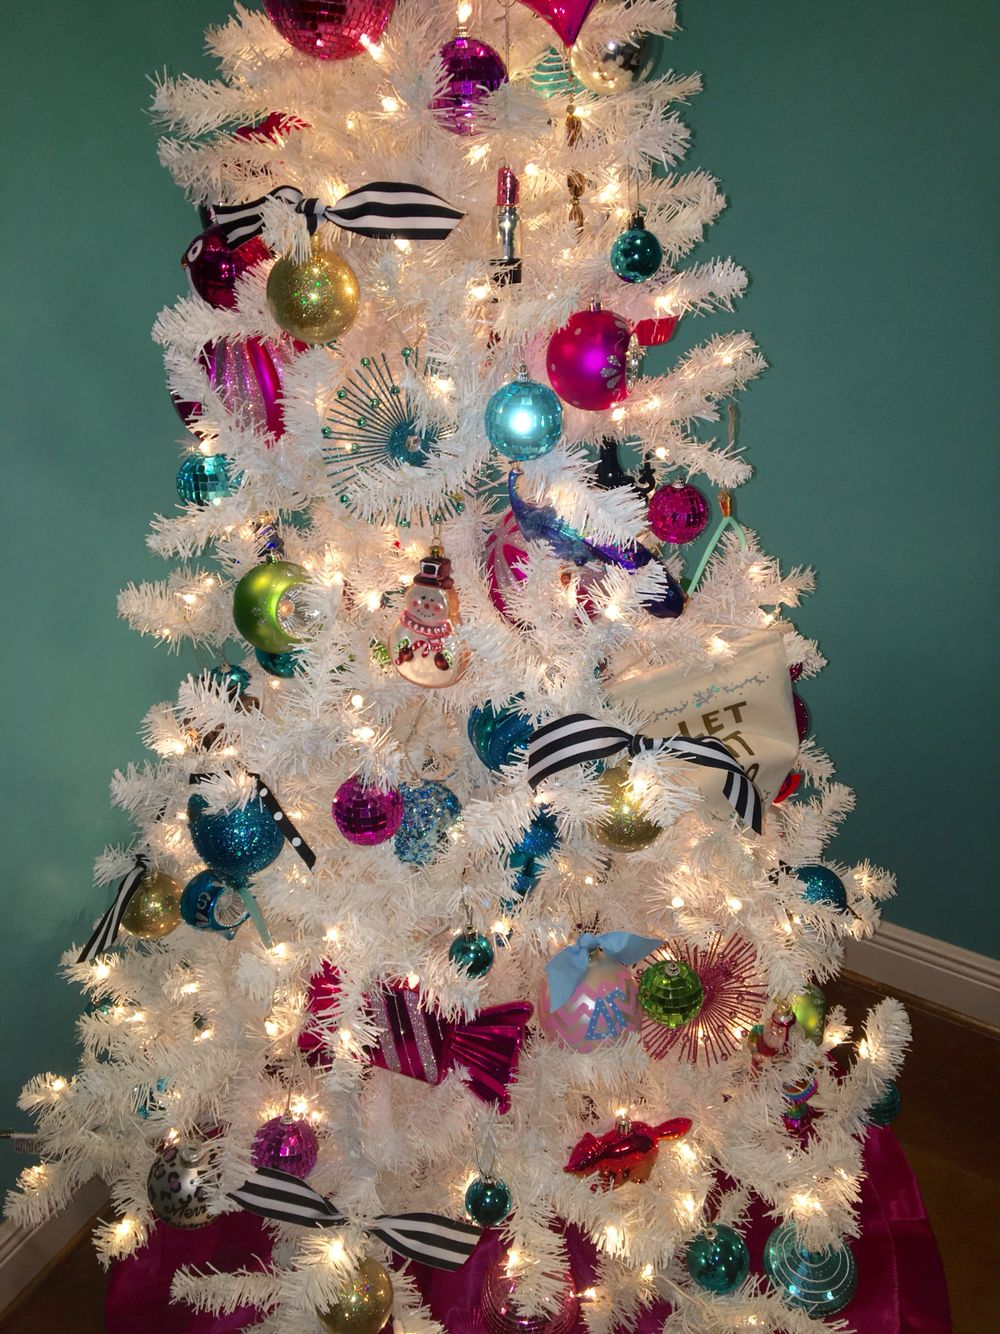 Kate Spade Inspired Christmas Tree | Happy Holidays | Pinterest ...